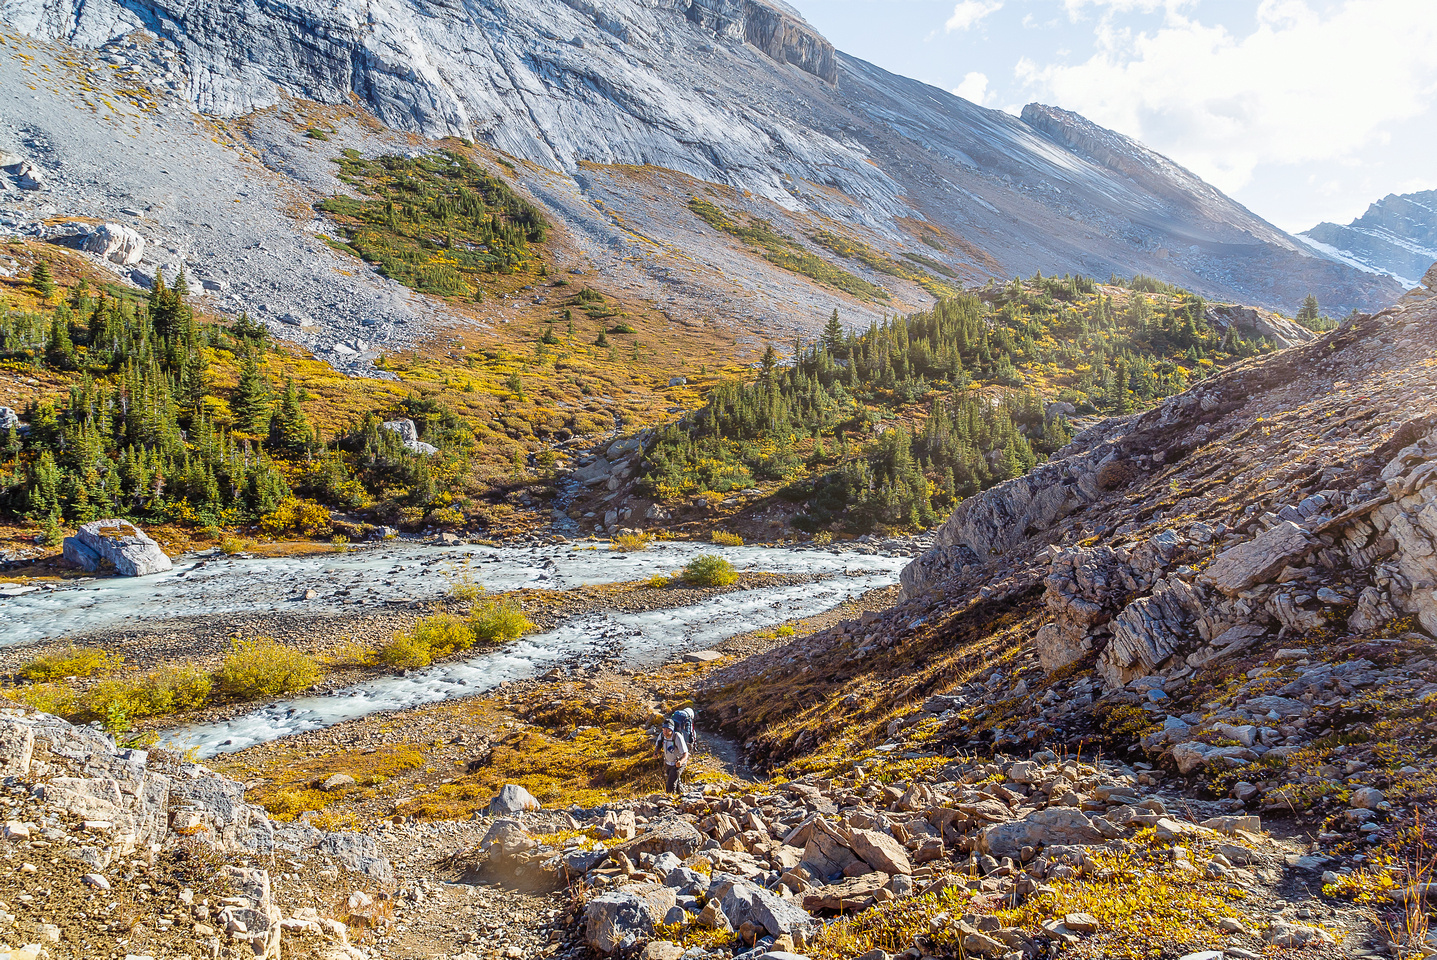 Hiking up to Nigel Pass from the Brazeau River.